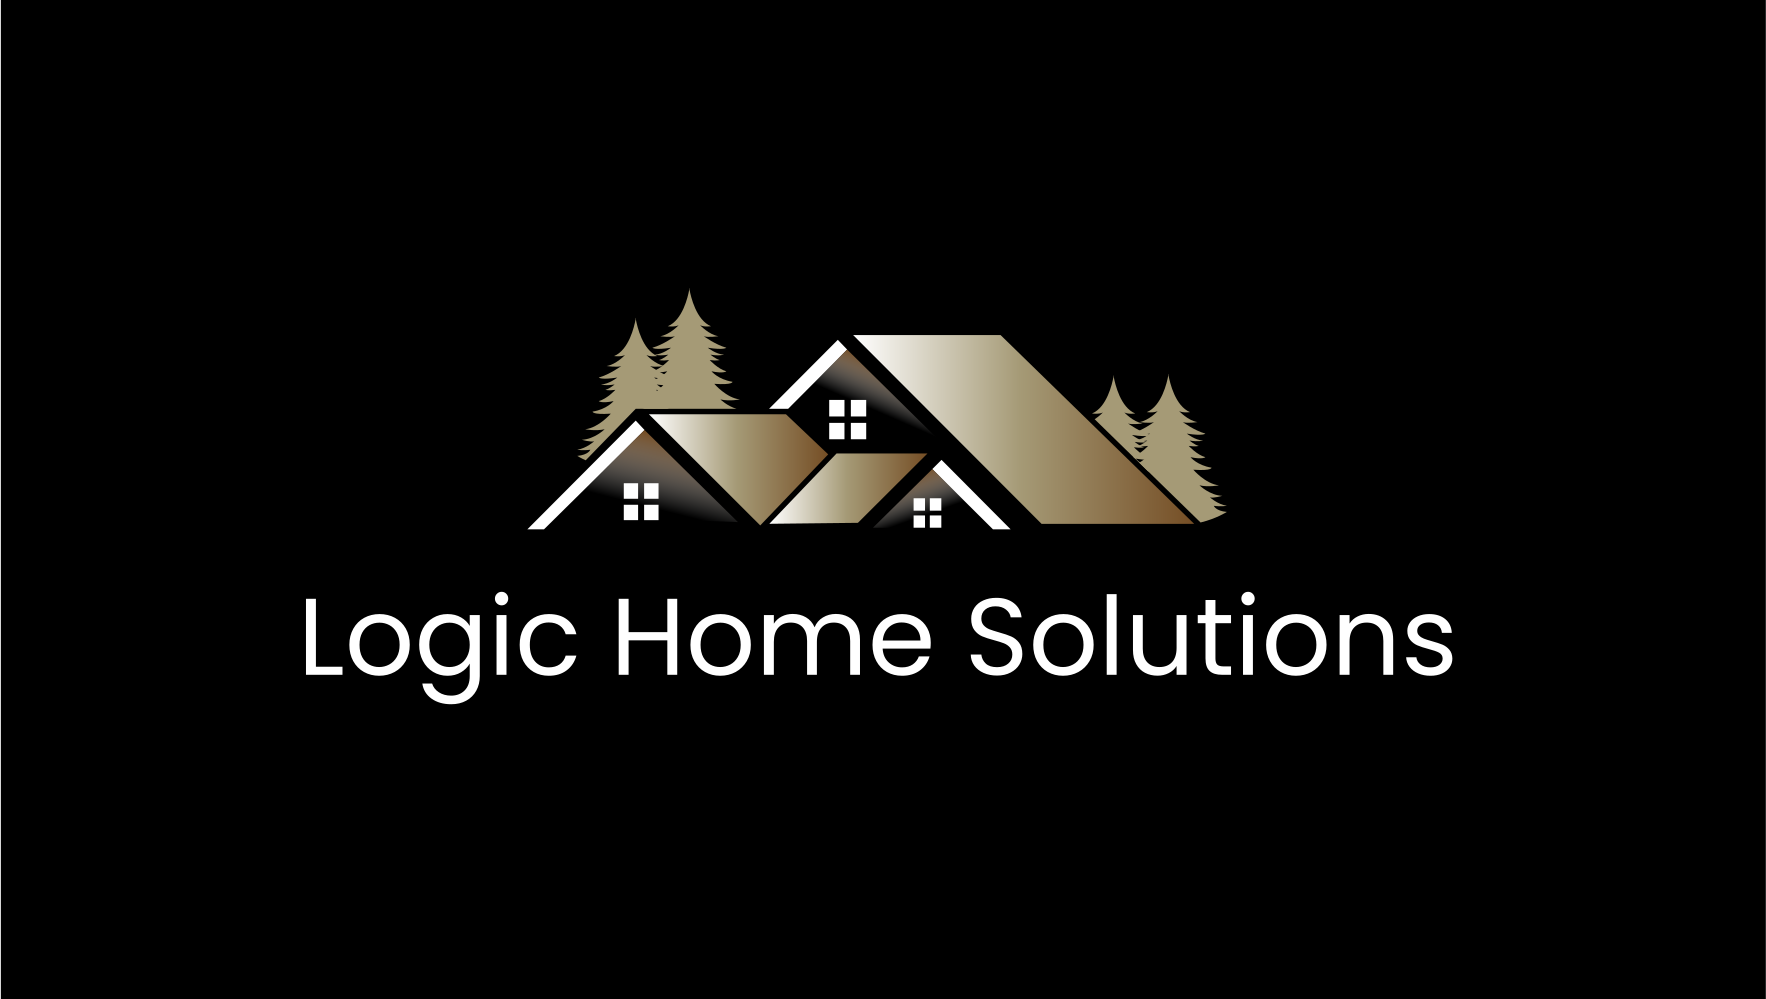 Logic Home Solutions